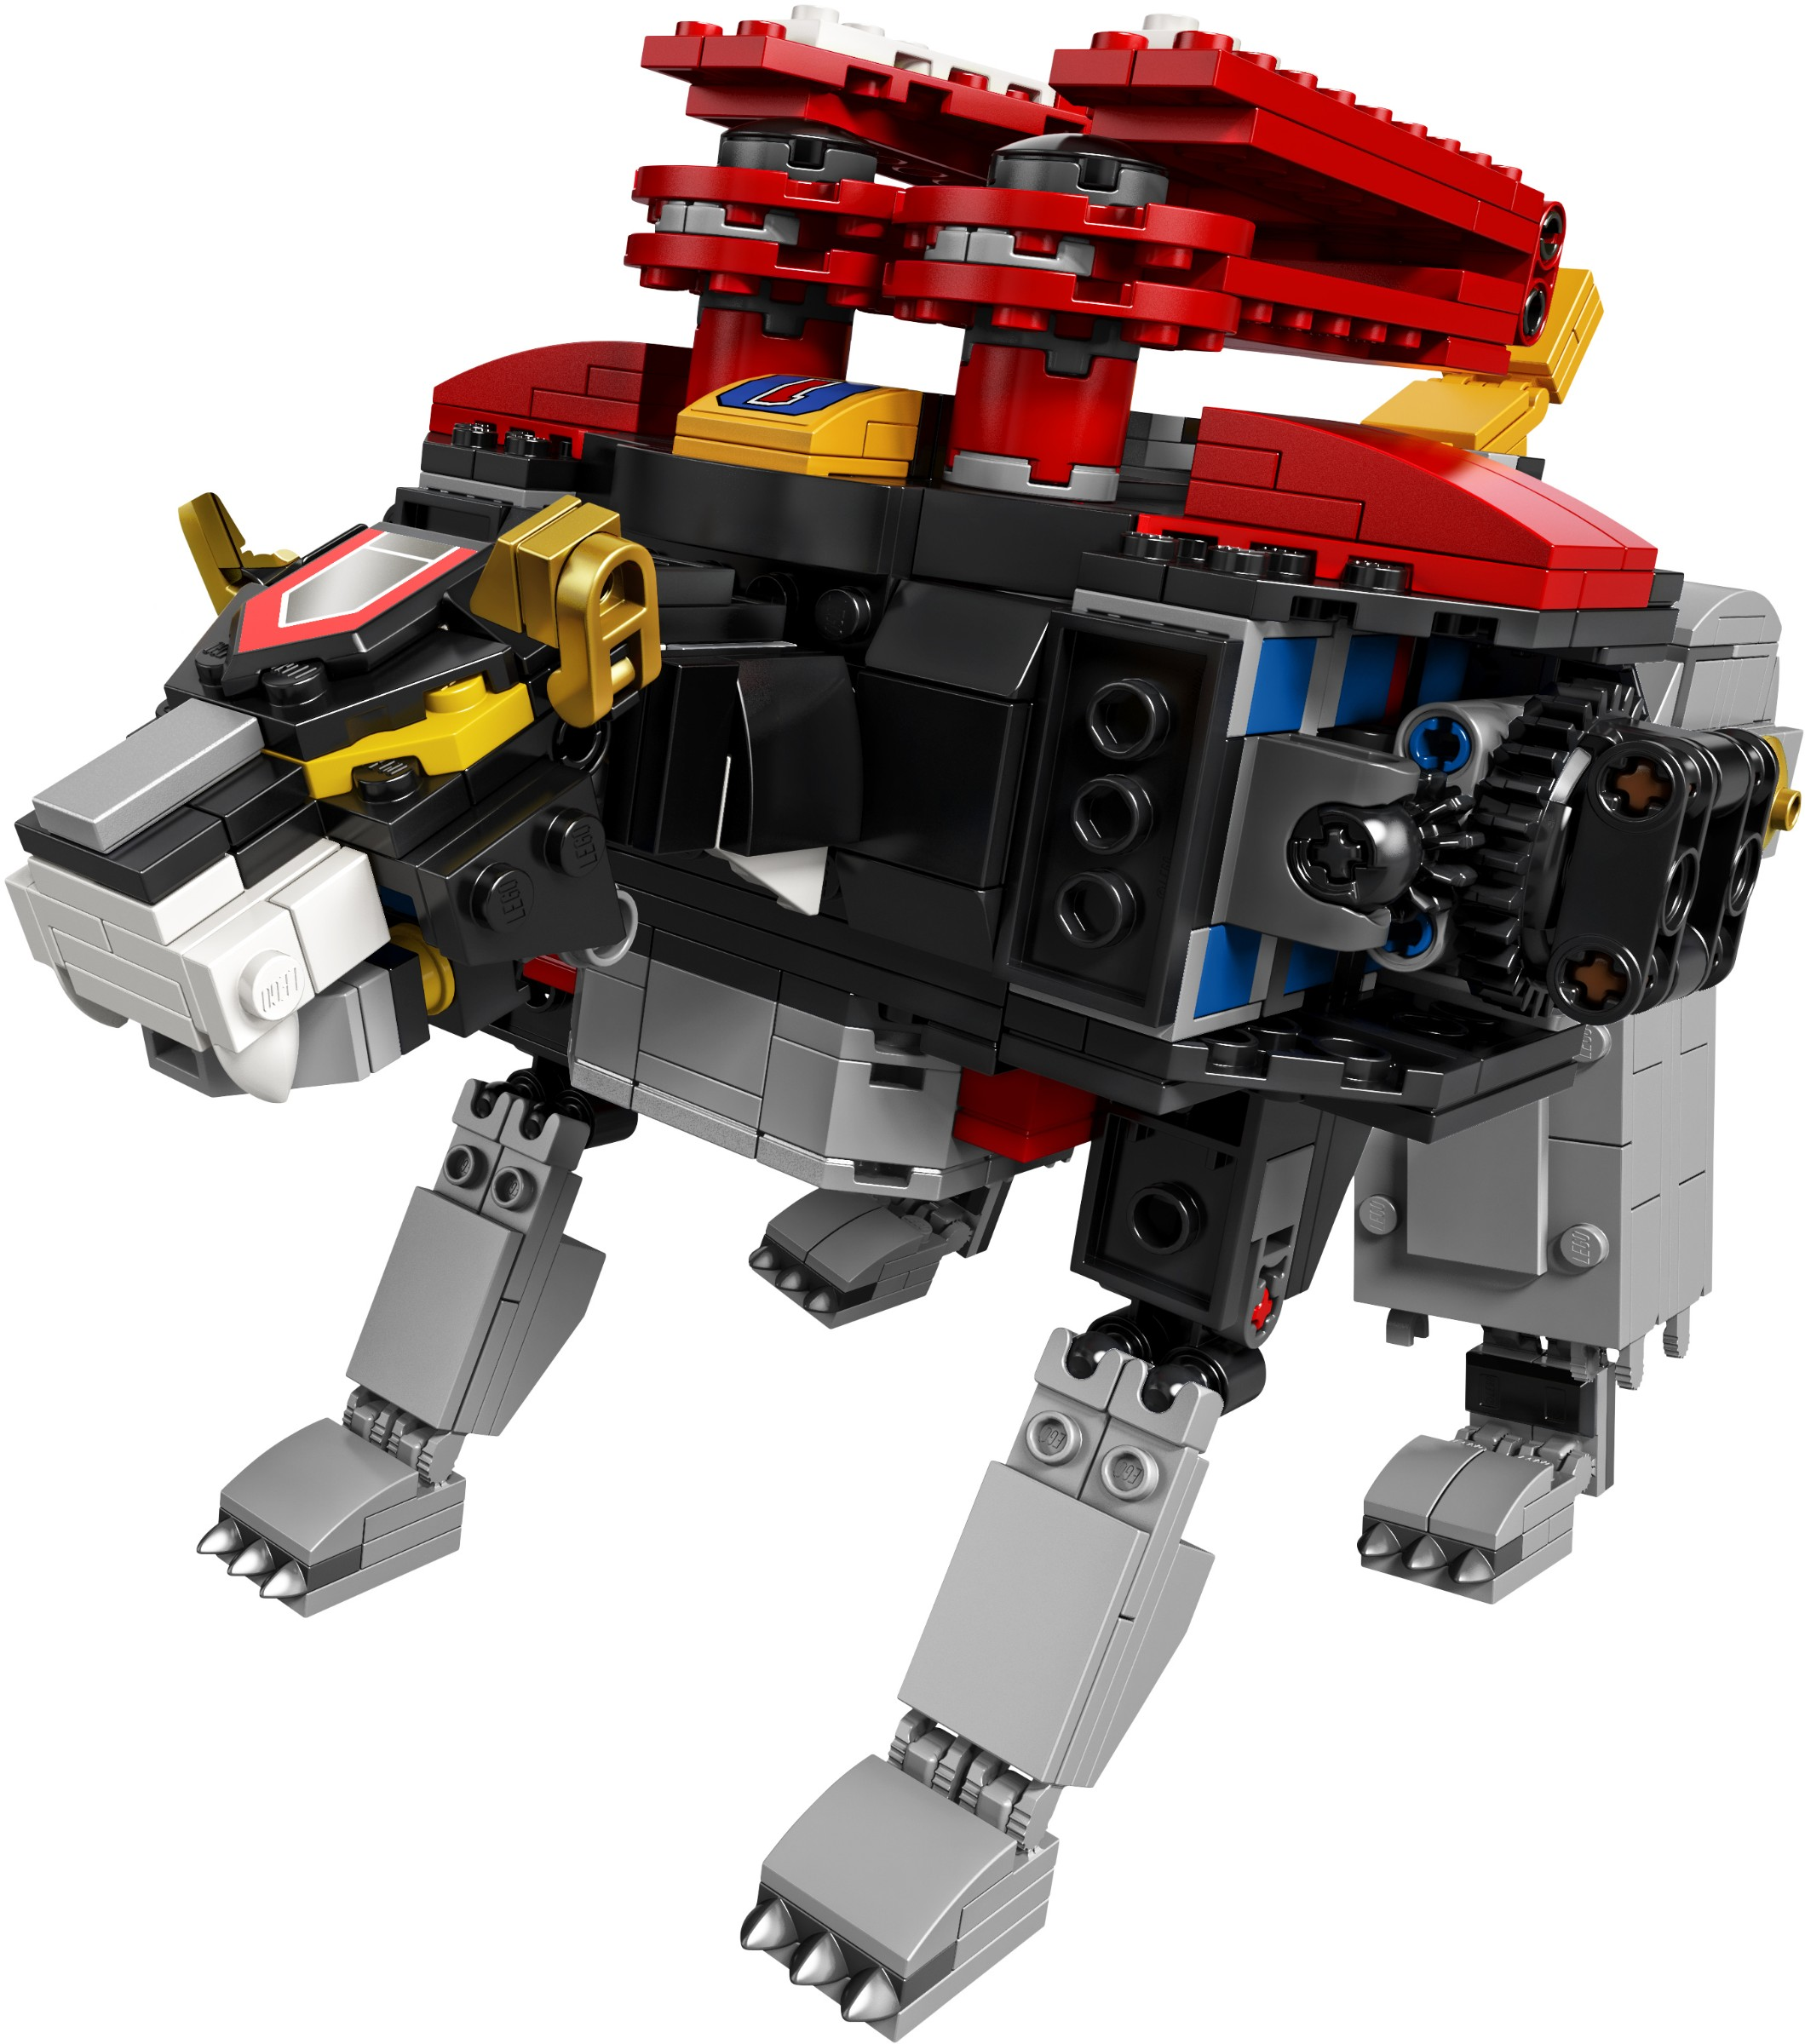 Voltron    at last! | Brickset: LEGO set guide and database